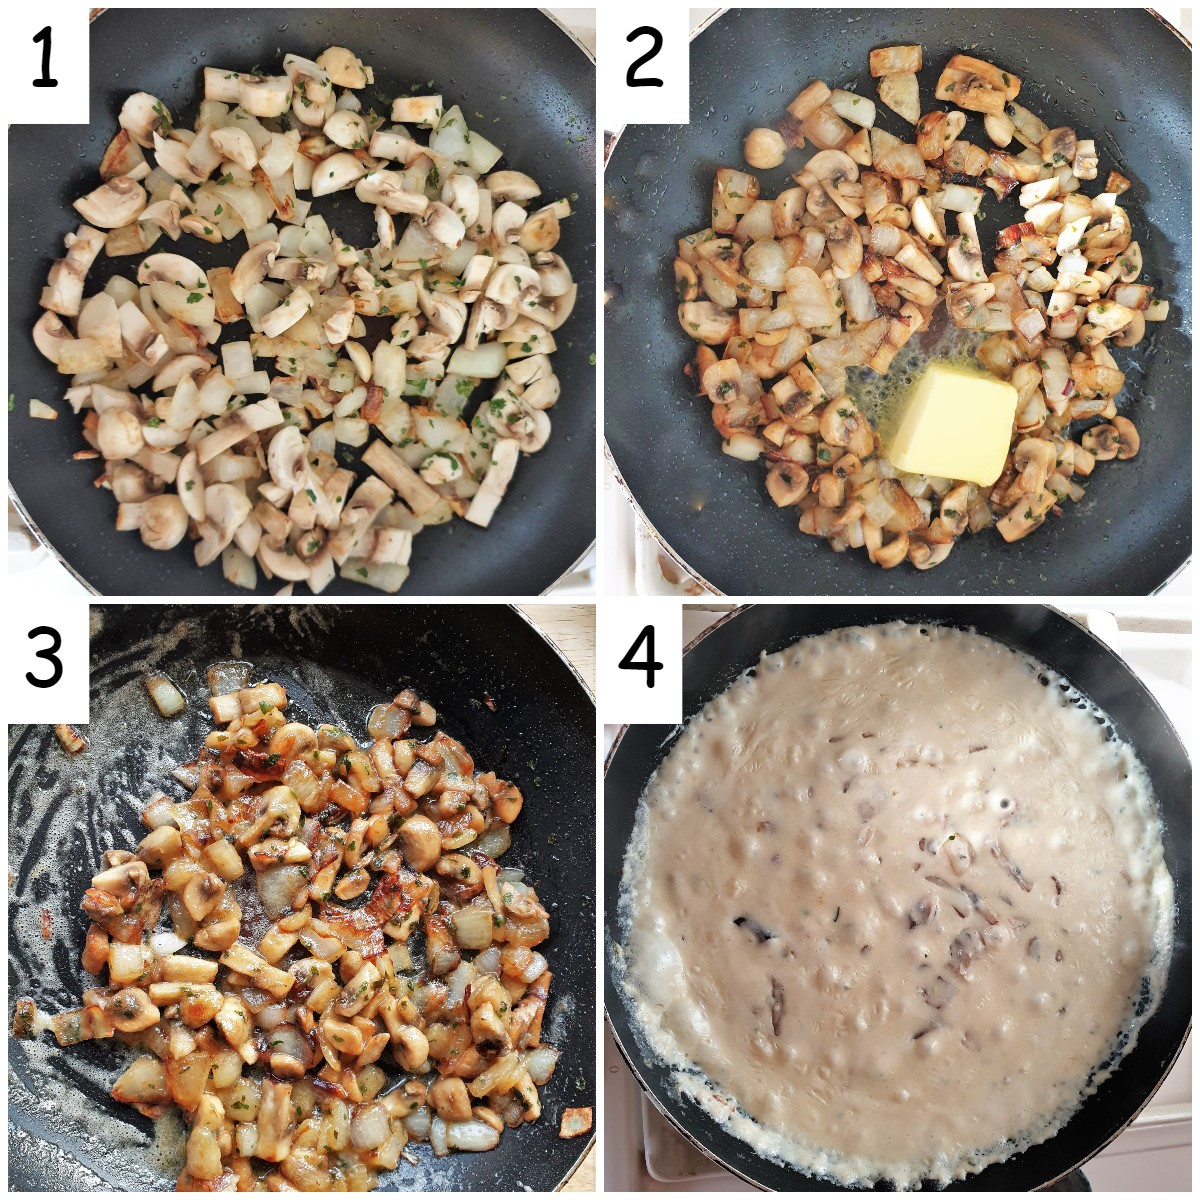 Collage of 4 images showing how to cook the mushrooms and make the sauce for the pie.